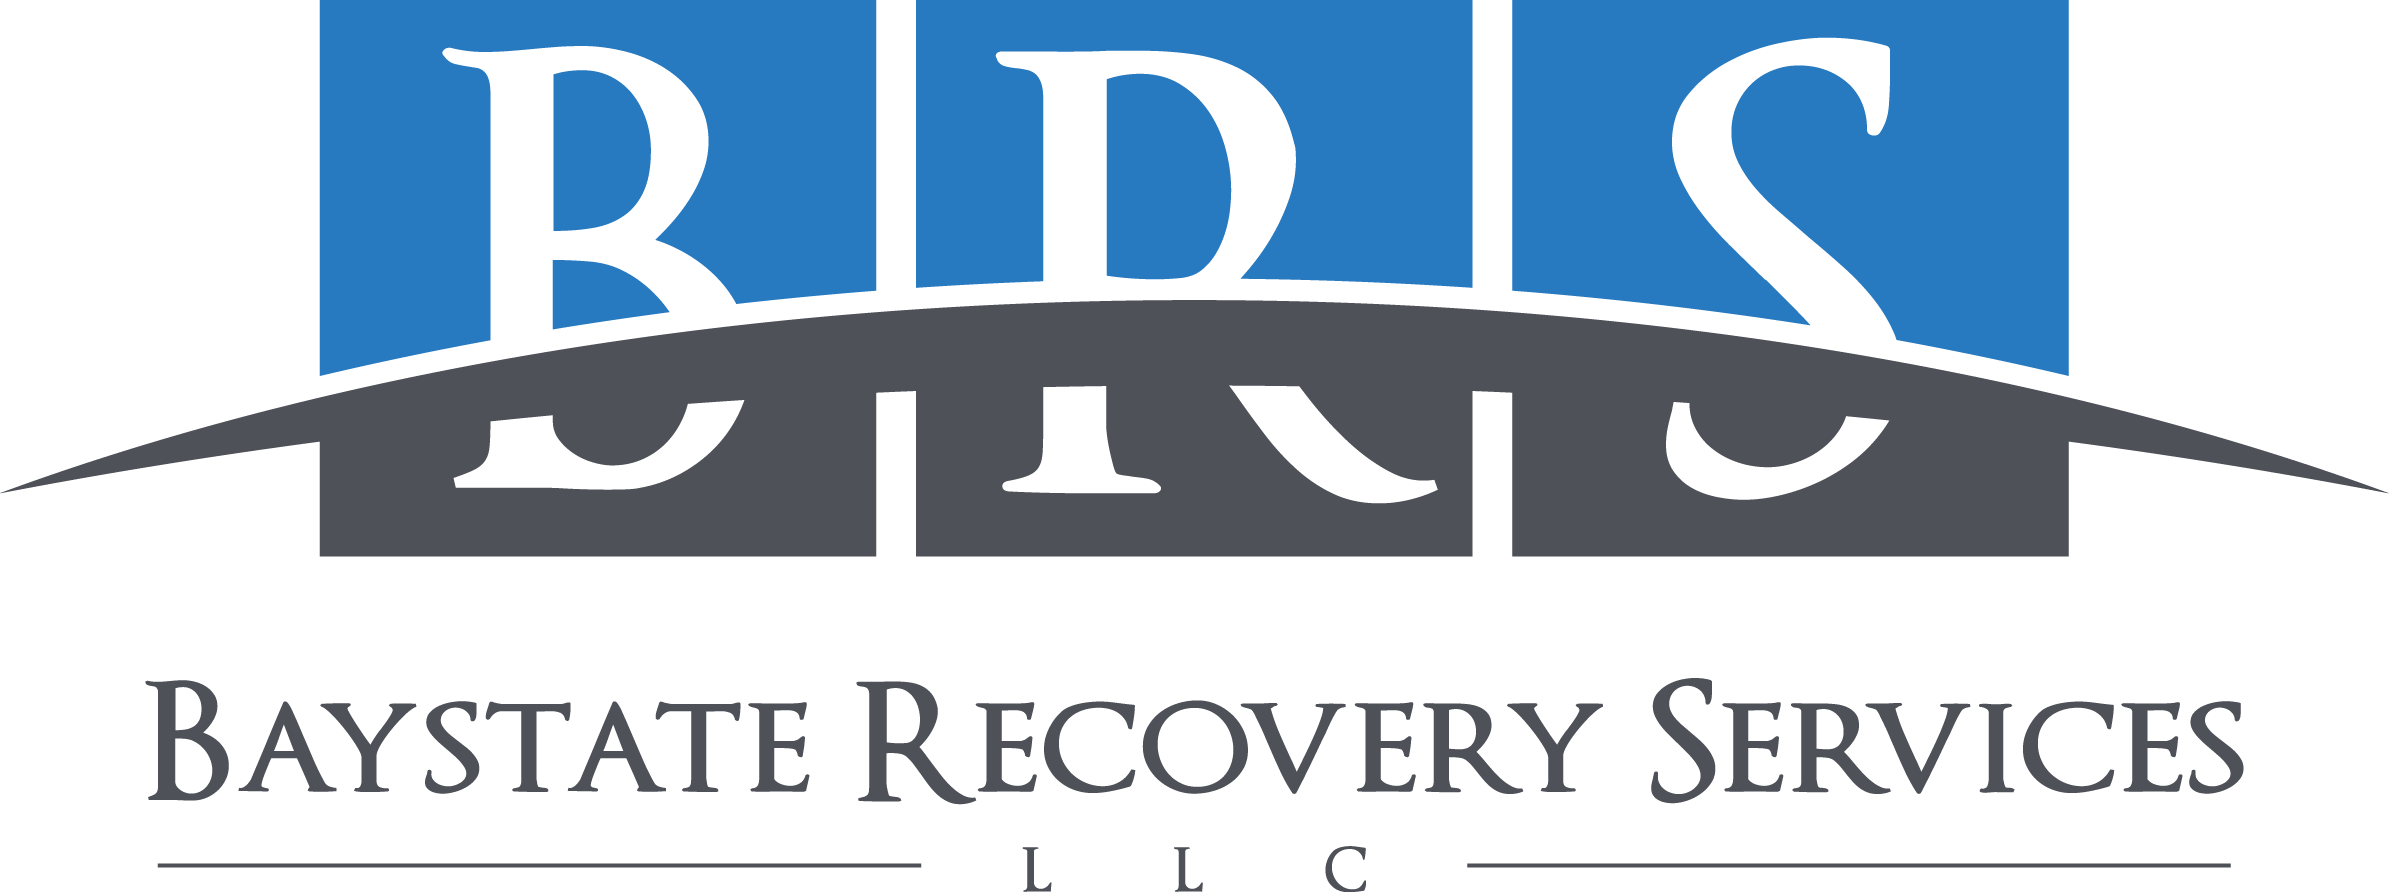 Baystate Recovery Services, LLC